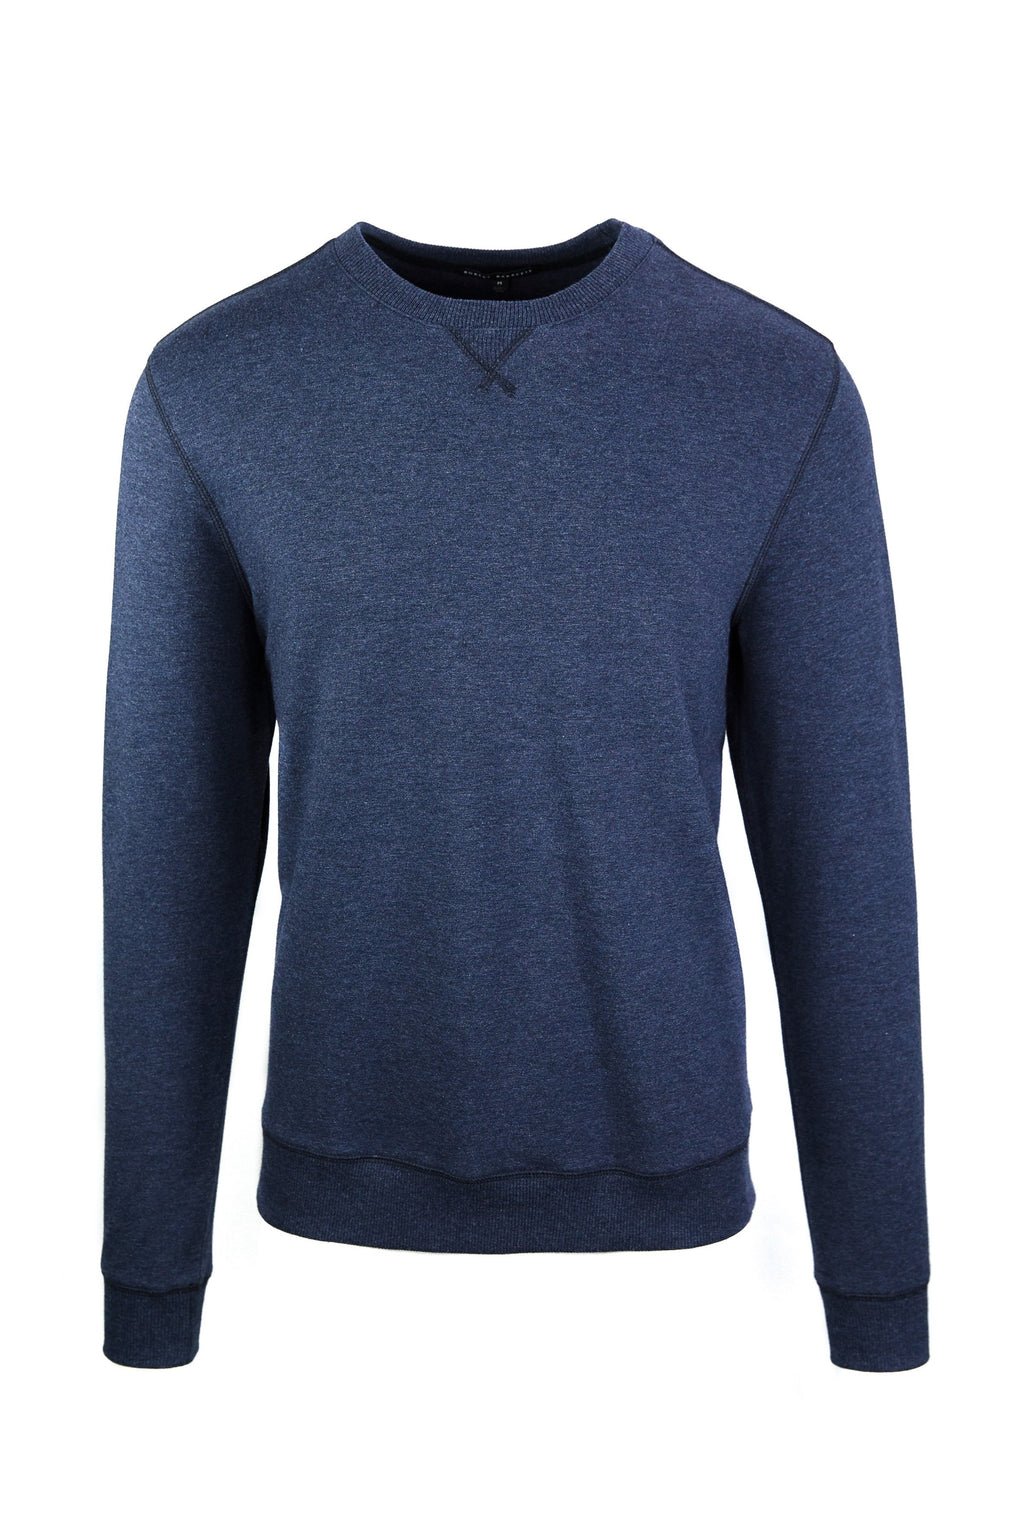 Stalworth Sweatshirt